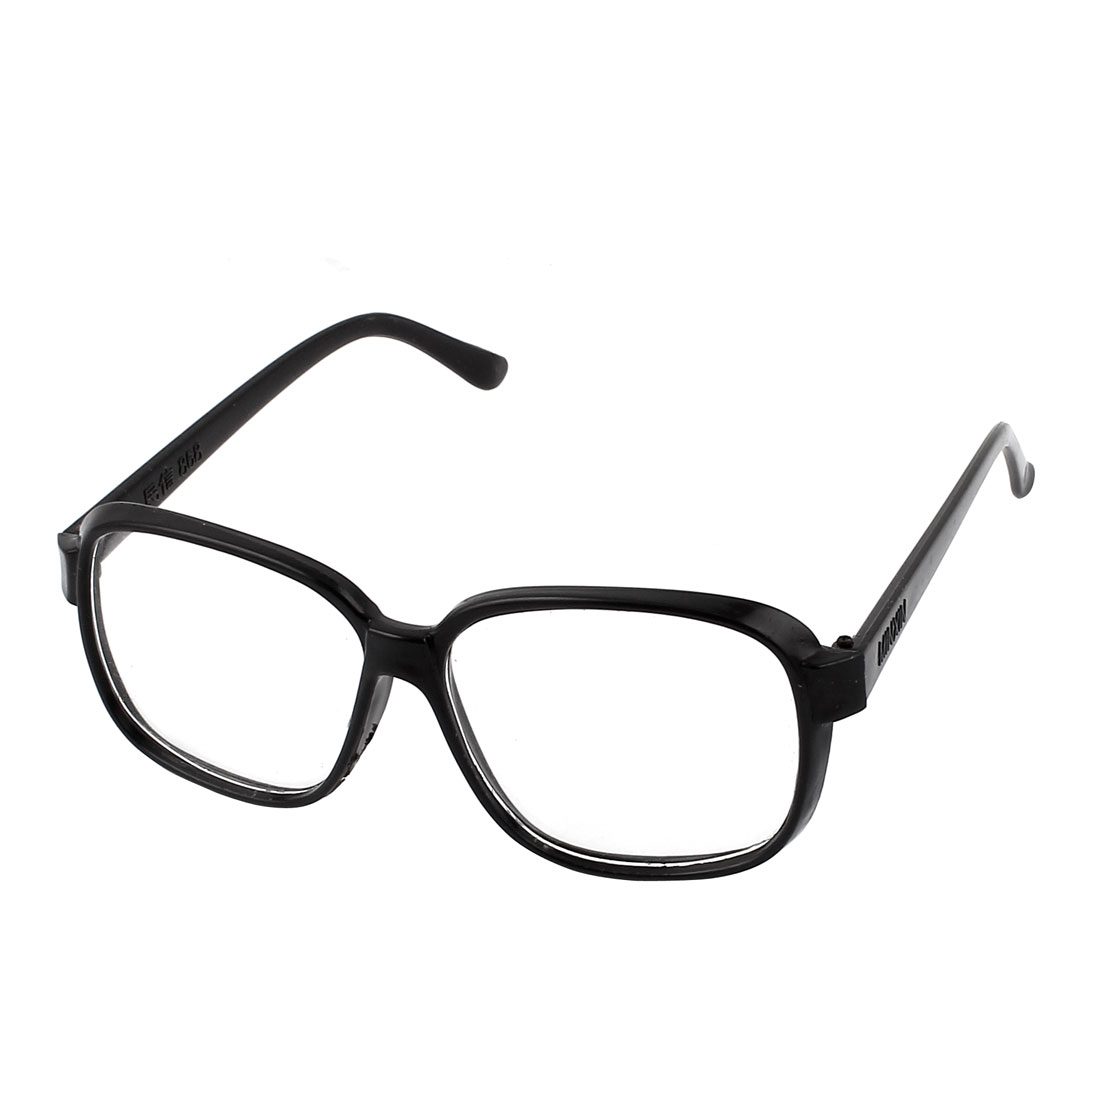 Outdoor Full Frame Clear Lens Eyes Protector Plain Glasses Eyeglass Black